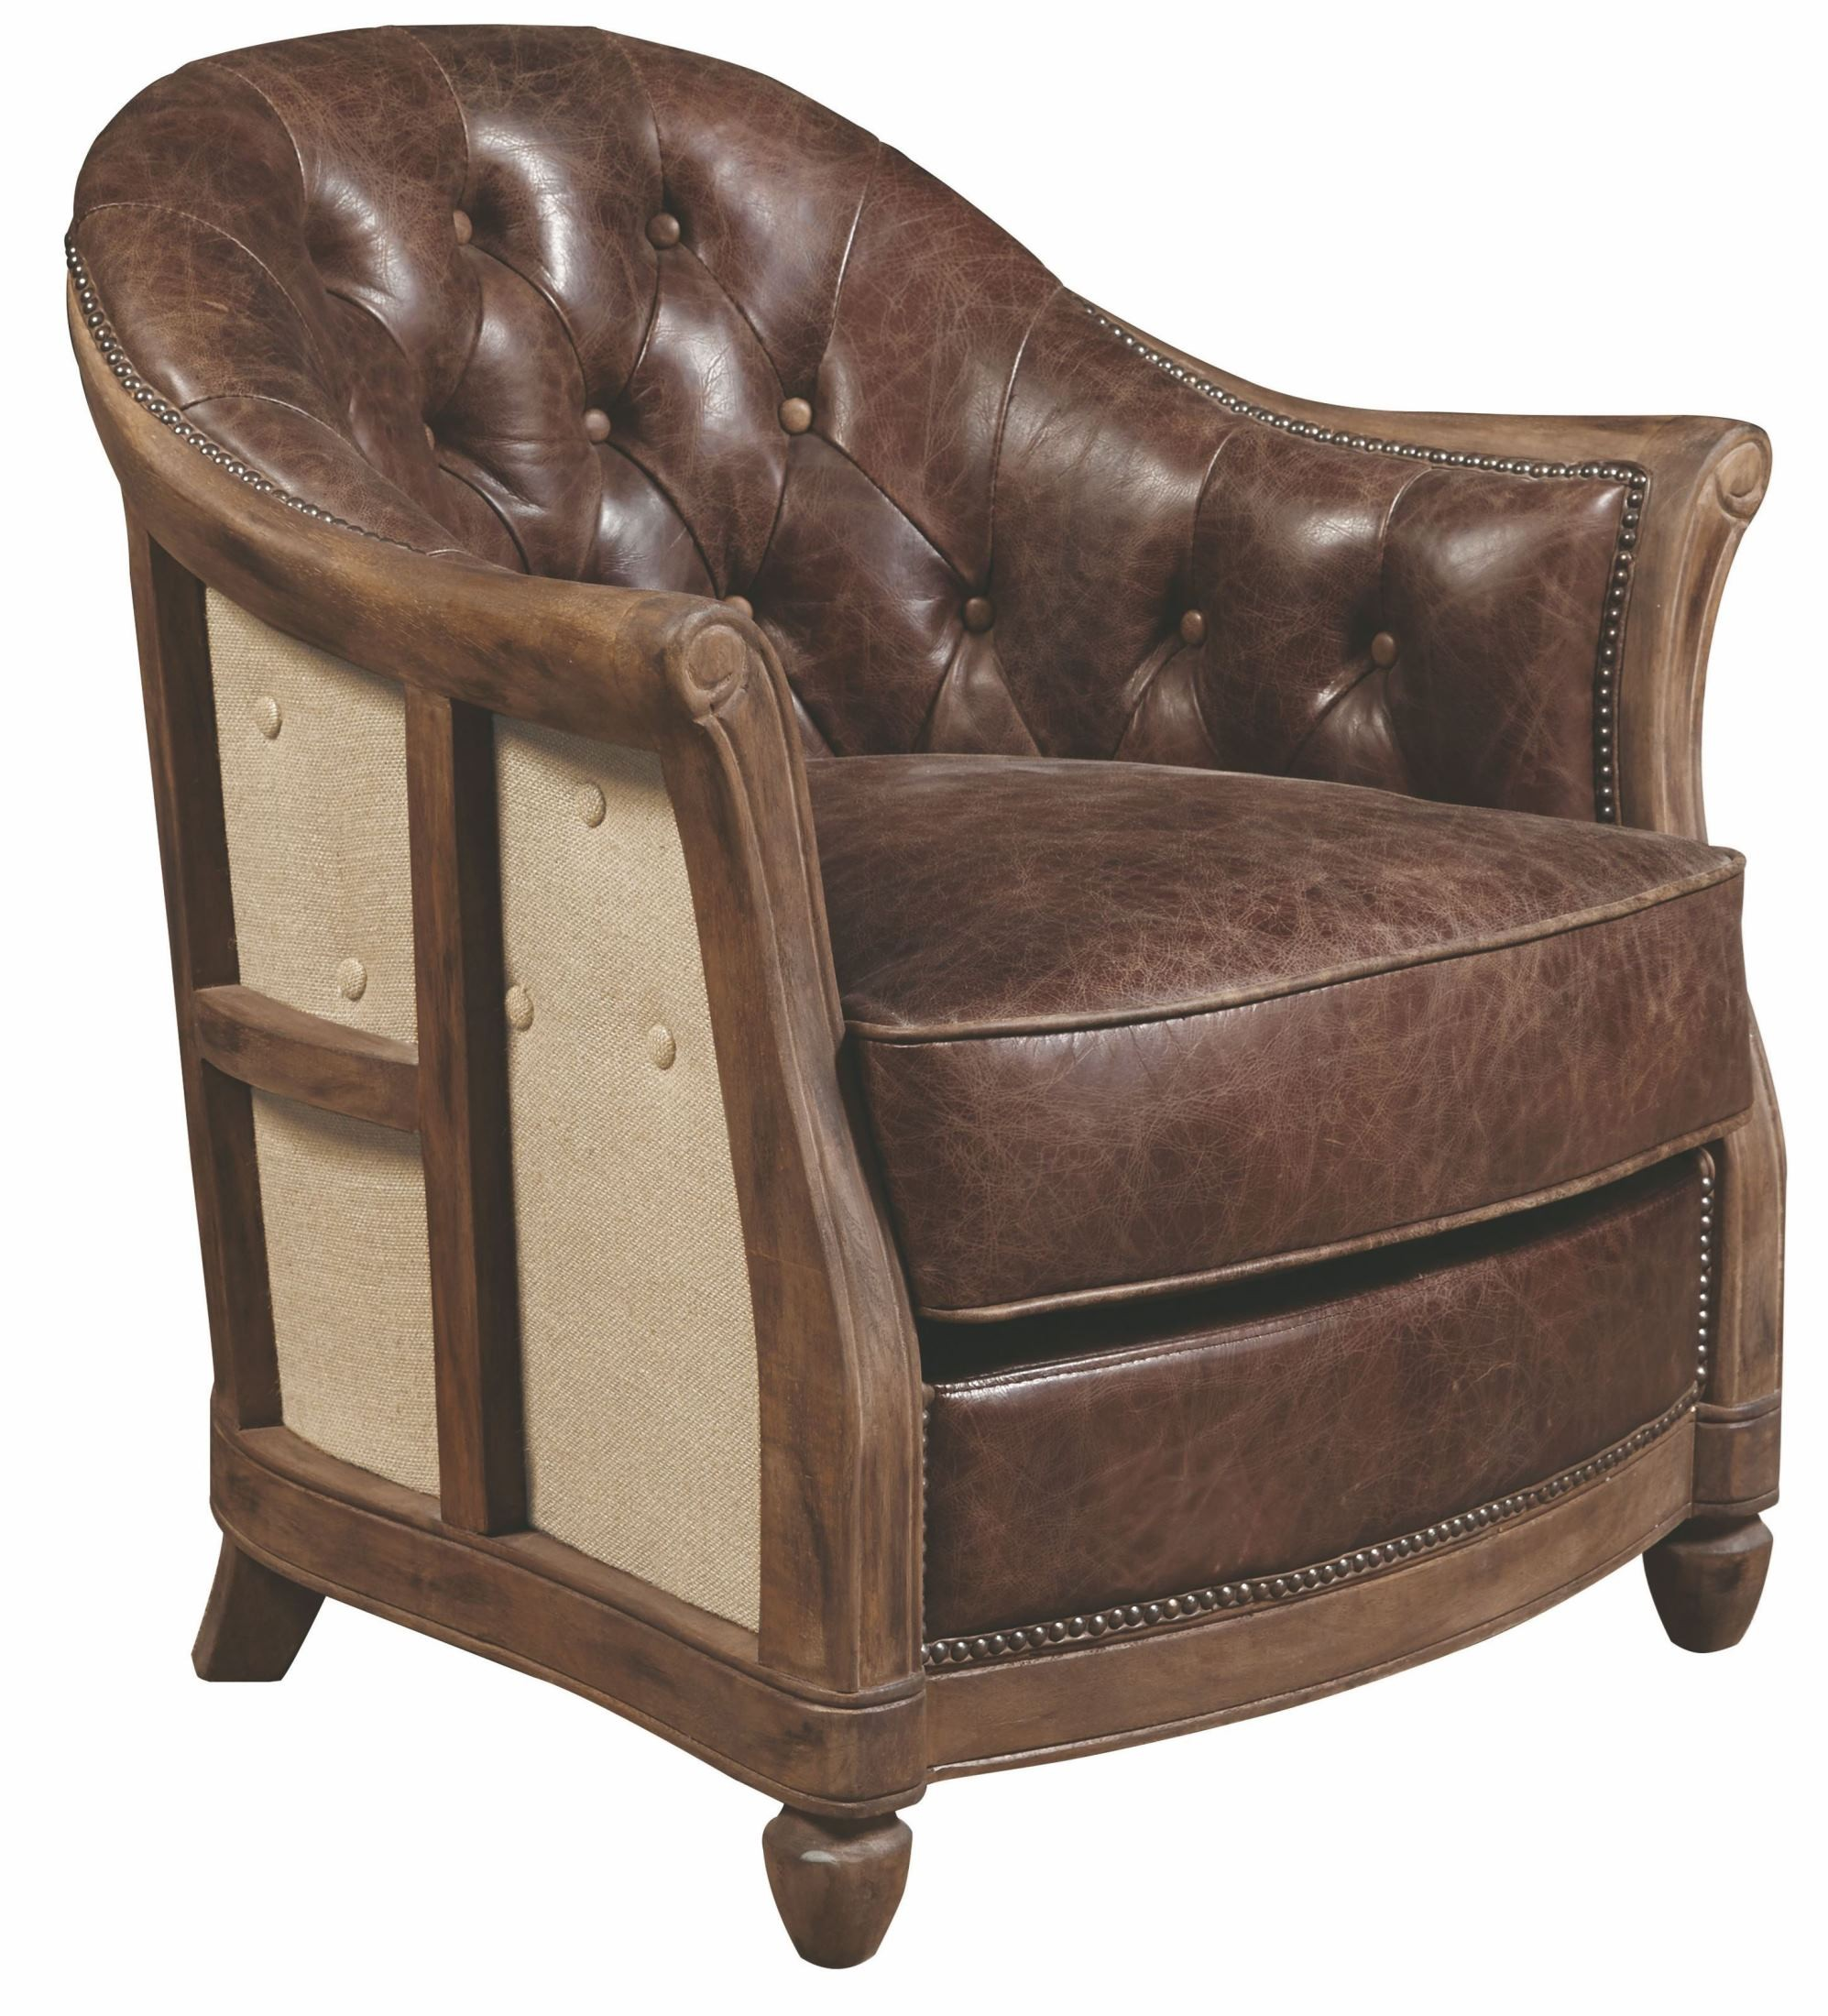 Andrew brown leather accent chair p006205 pulaski for Accent chair with brown leather sofa